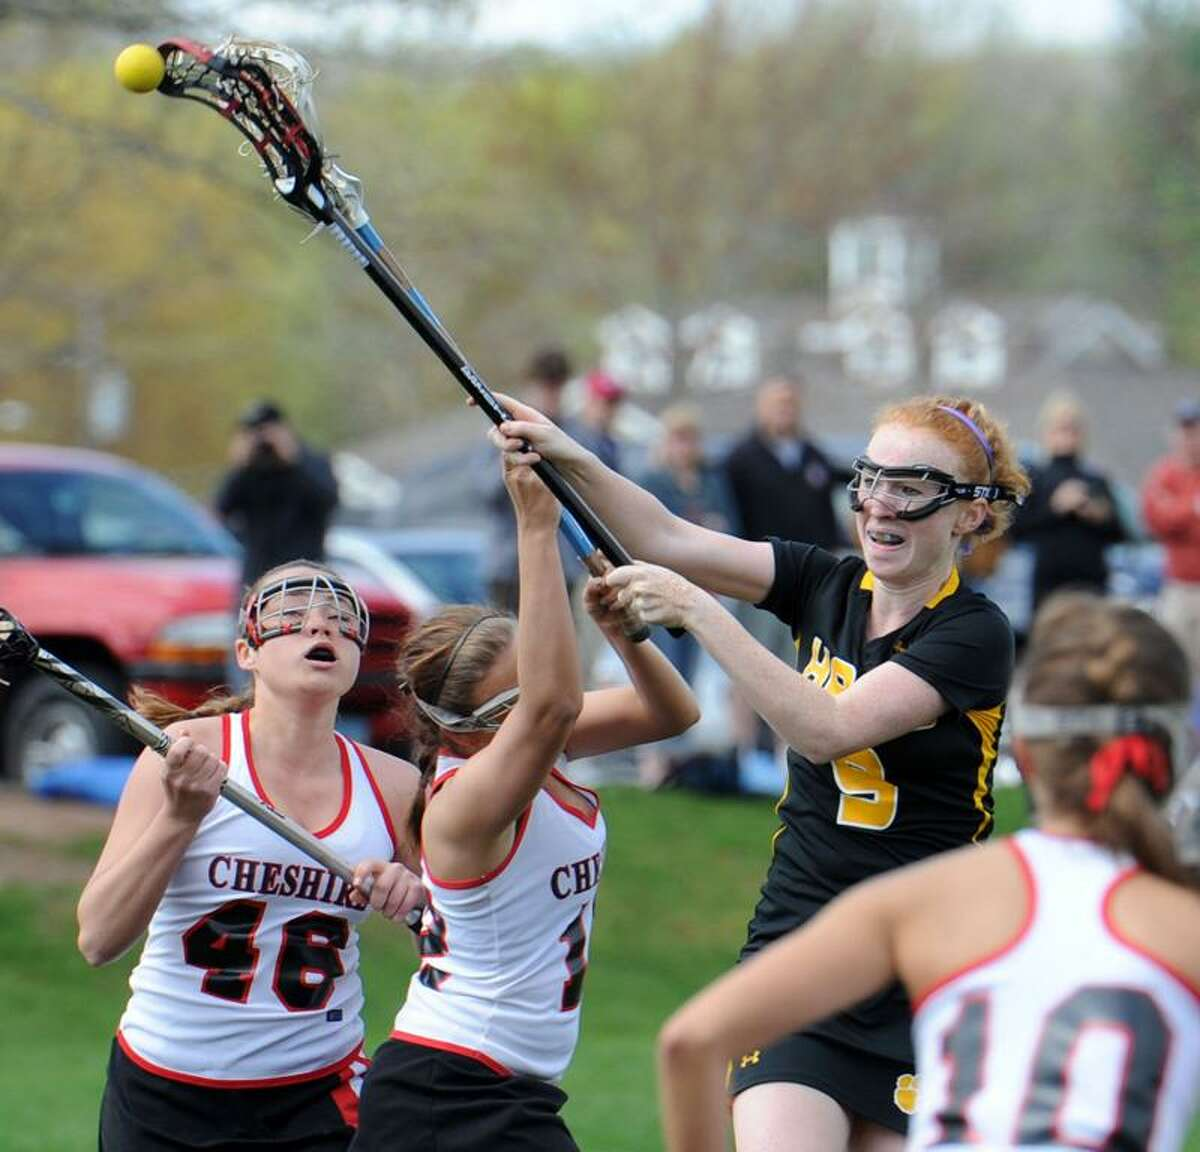 From left to right, Cheshire's Lauren Anderson, Paige Pikulski and Alyssa Hague right can't stop Hand's Hannah Morgan scoring Hand's 7th goal. Photo by Mara Lavitt/New Haven Register 4/30/11